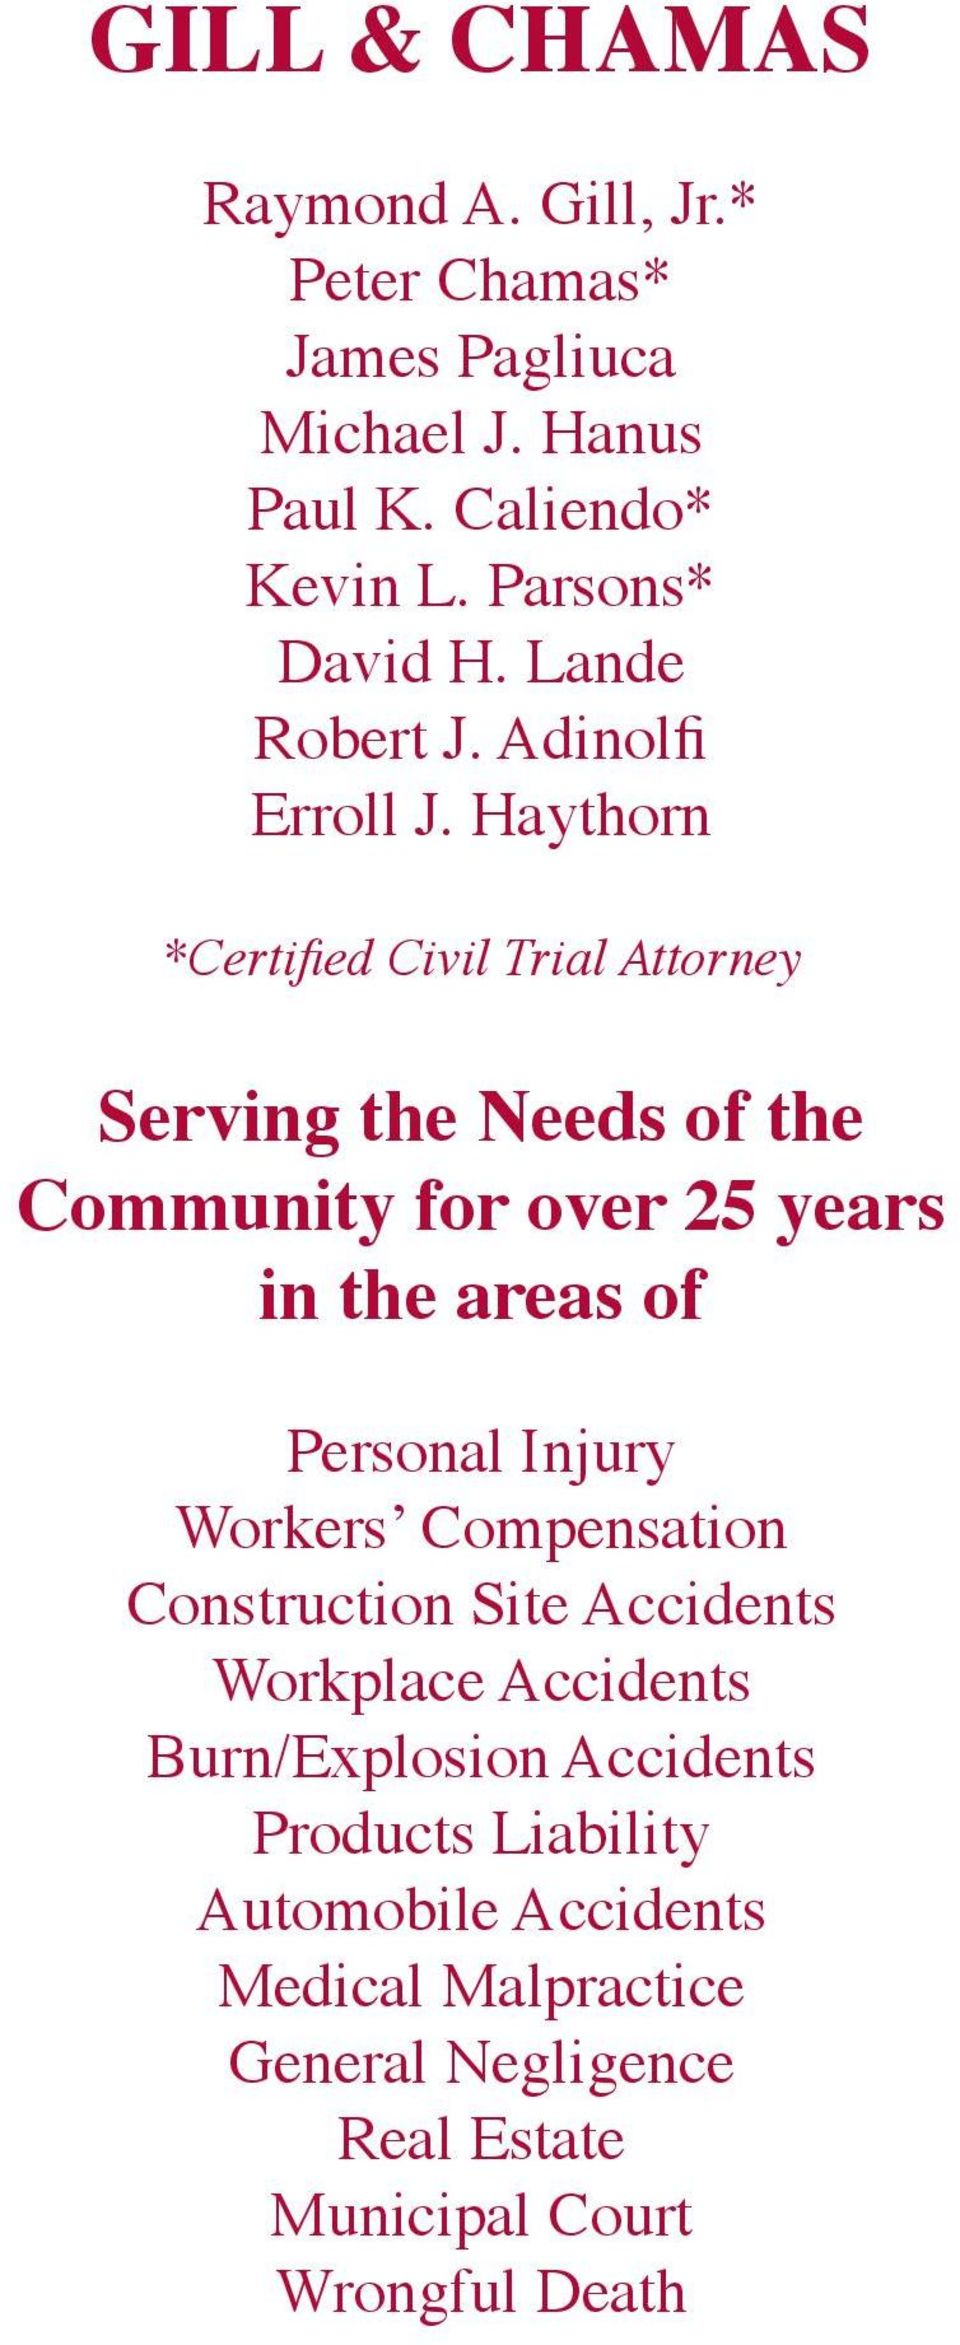 Haythorn *Certified Civil Trial Attorney Serving the Needs of the Community for over 25 years in the areas of Personal Injury